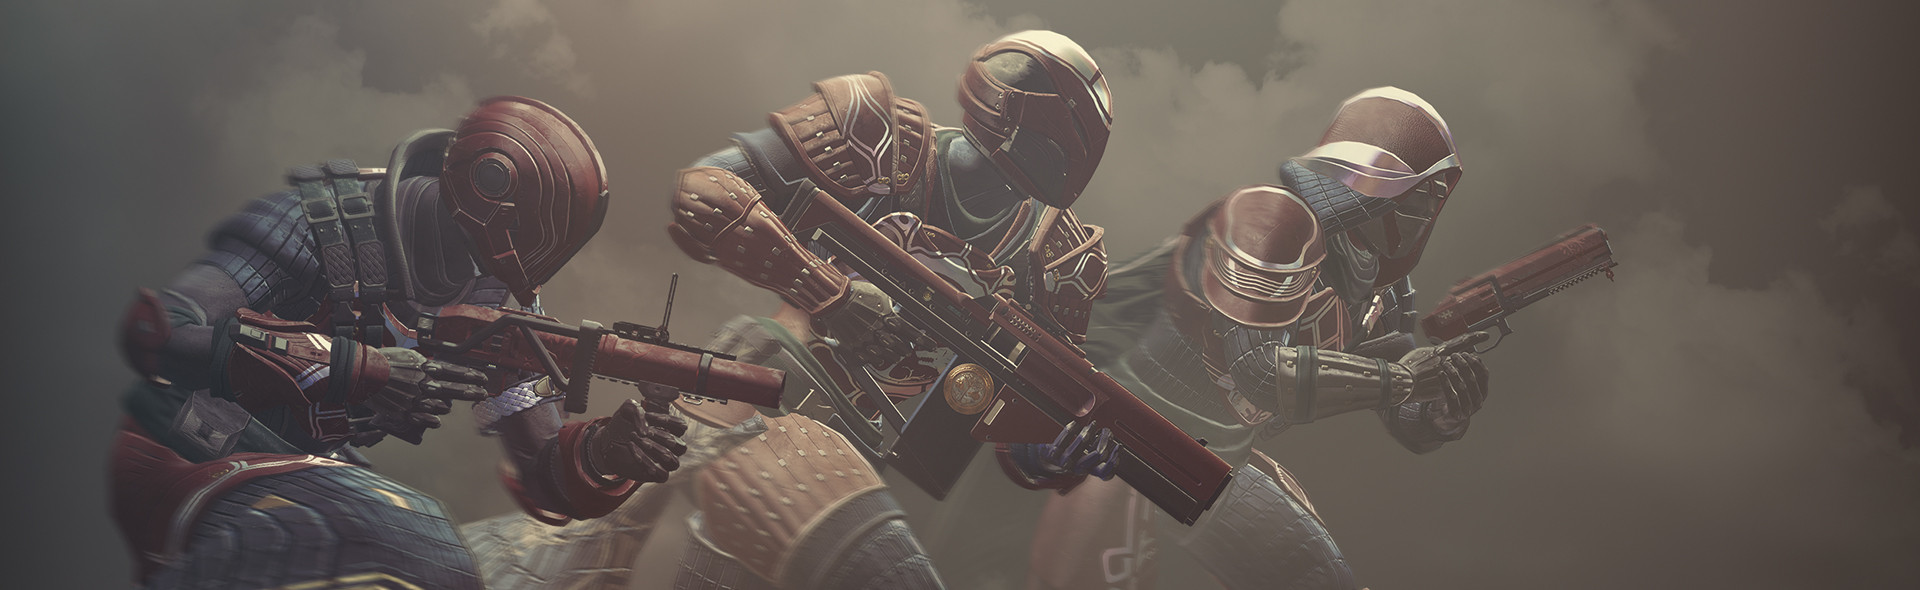 Destiny 2 Iron Banner Season 6